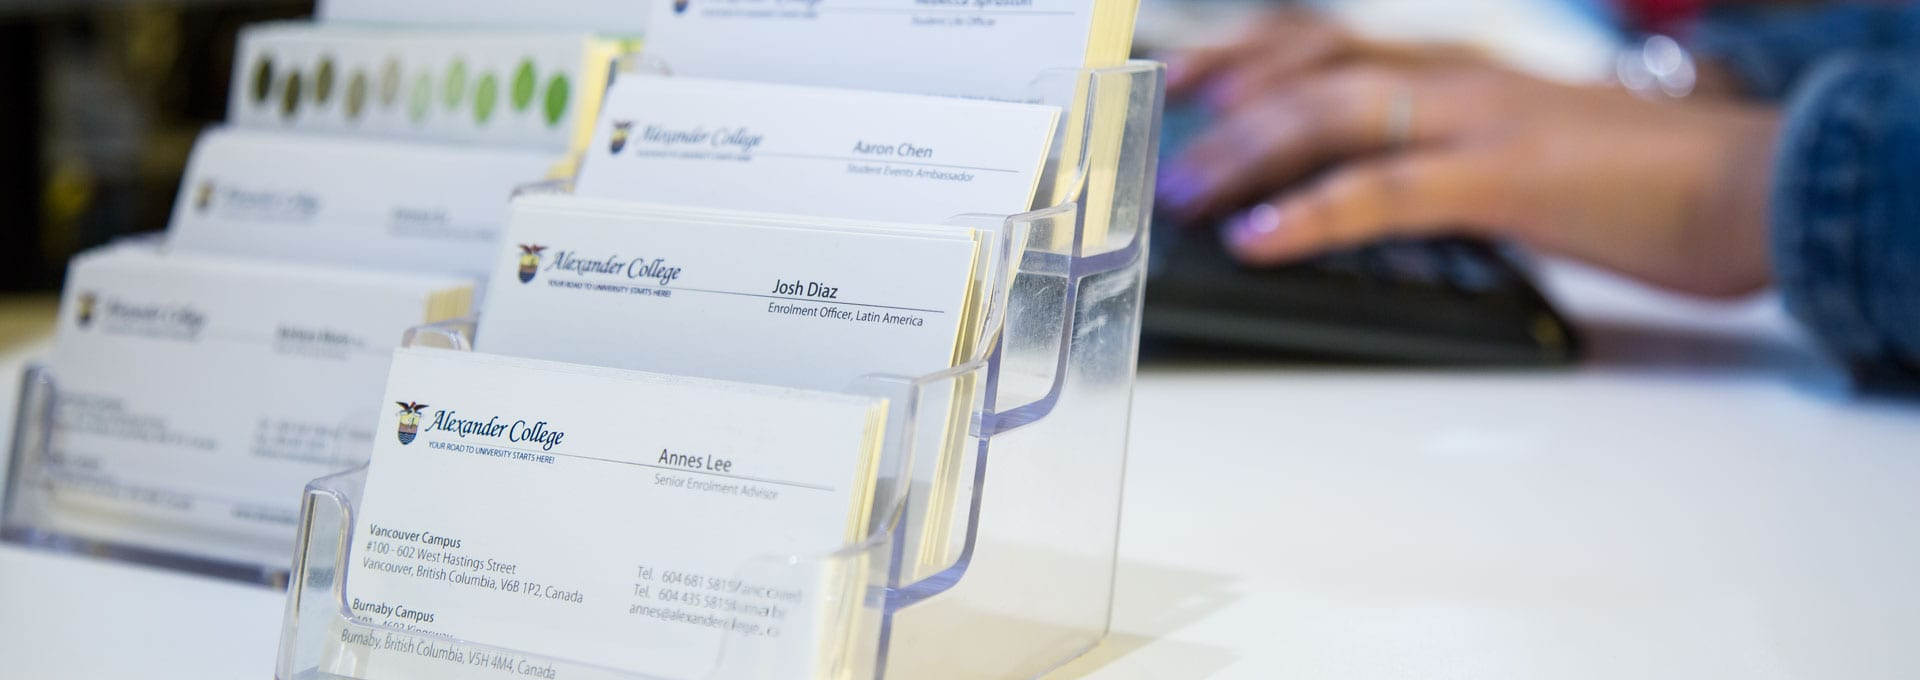 Business Cards of Alexander College Staff